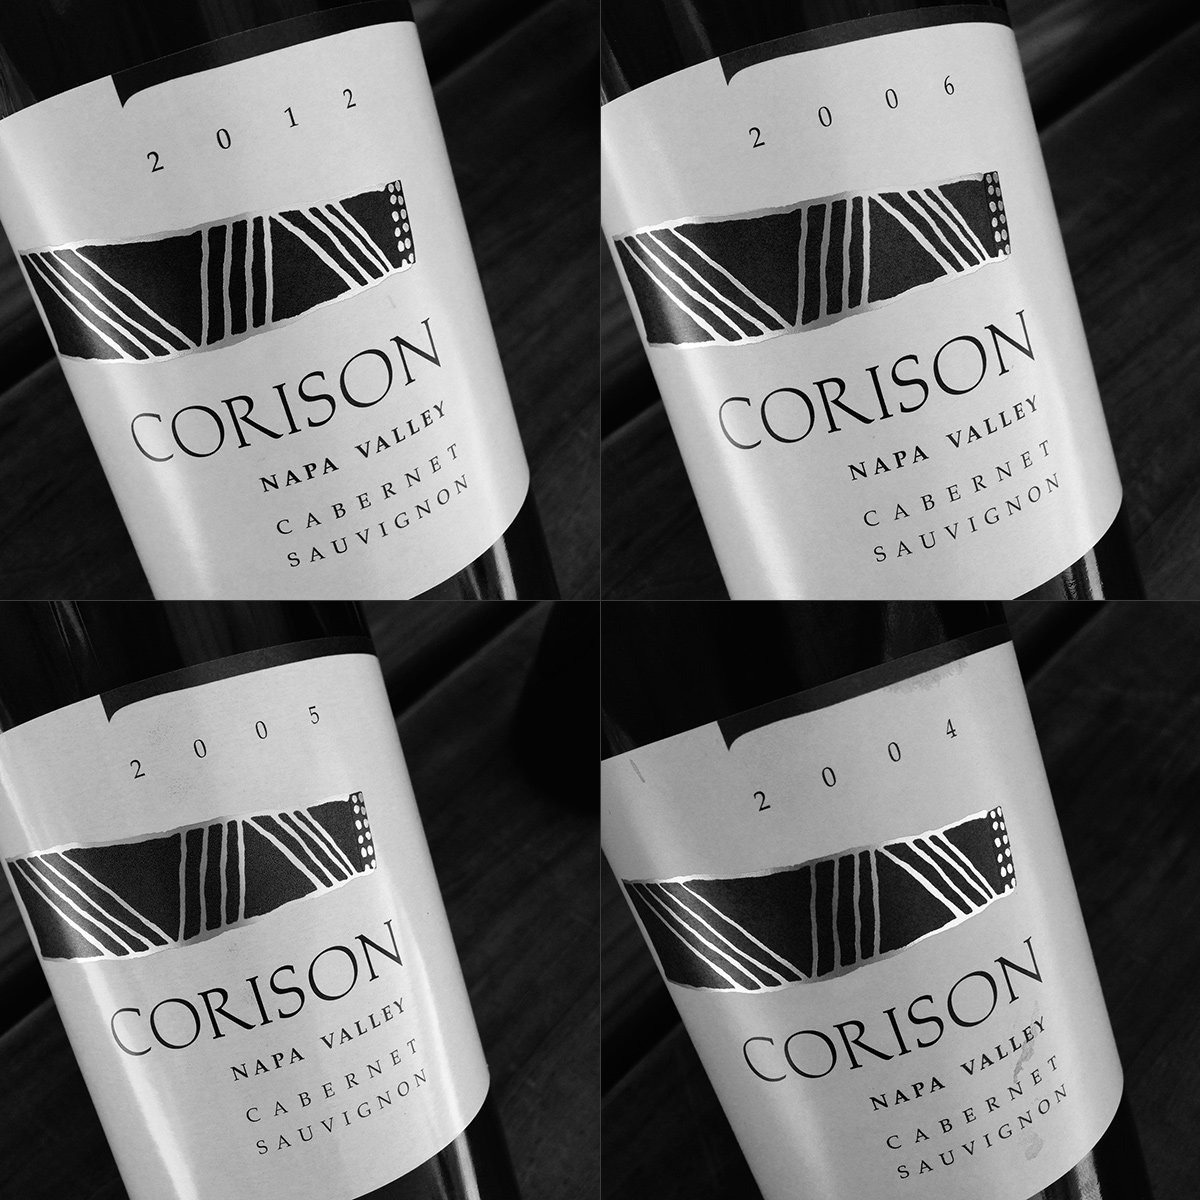 Corison Winery Cabernet Sauvignon Napa Valley, 2012, 2006, 2005, and 2004